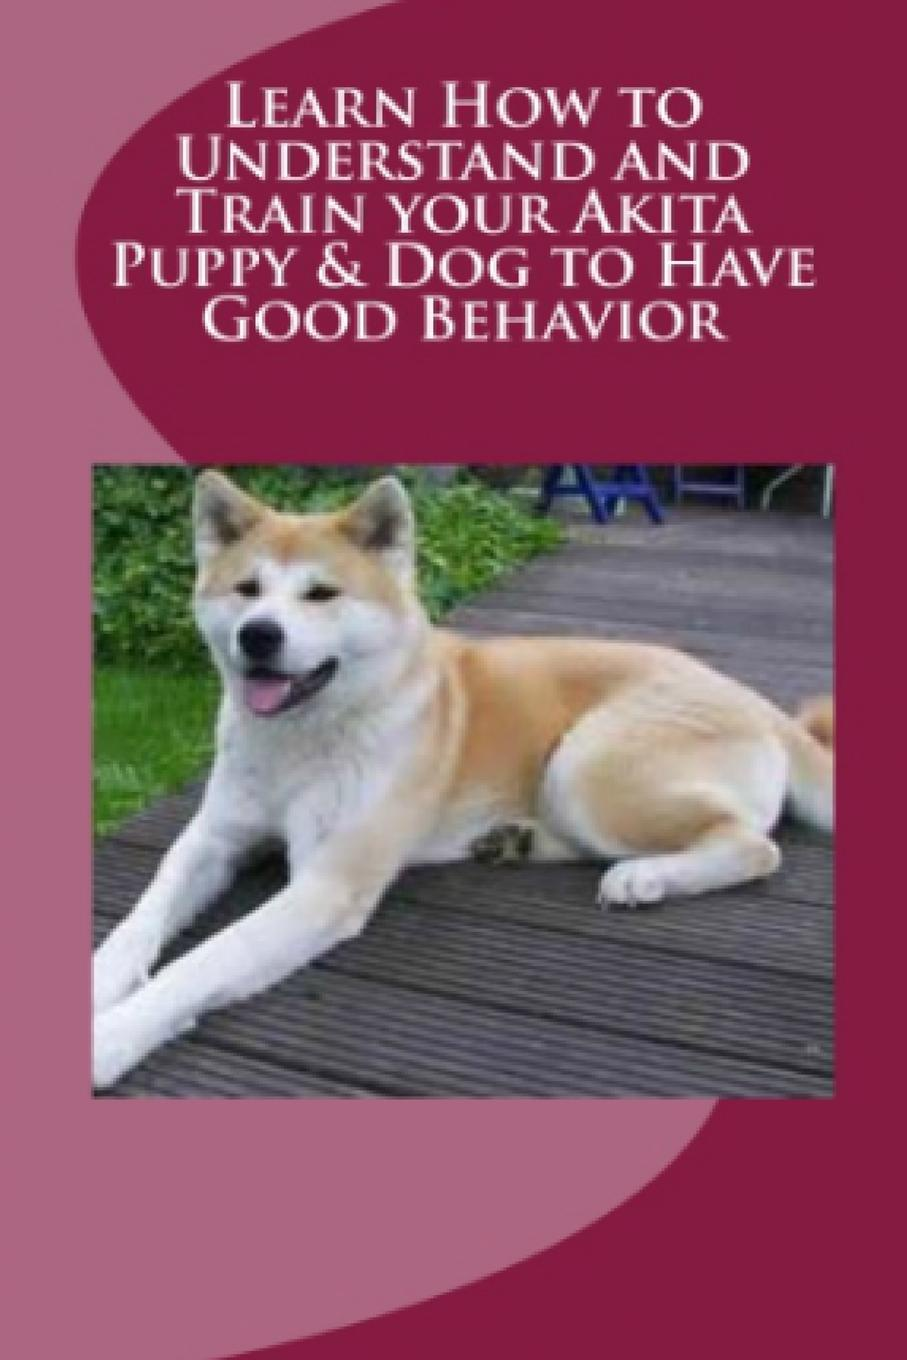 Vince Stead Learn How to Understand and Train your Akita Puppy . Dog to Have Good Behavior vince stead how to understand and train your golden retriever puppy or dog